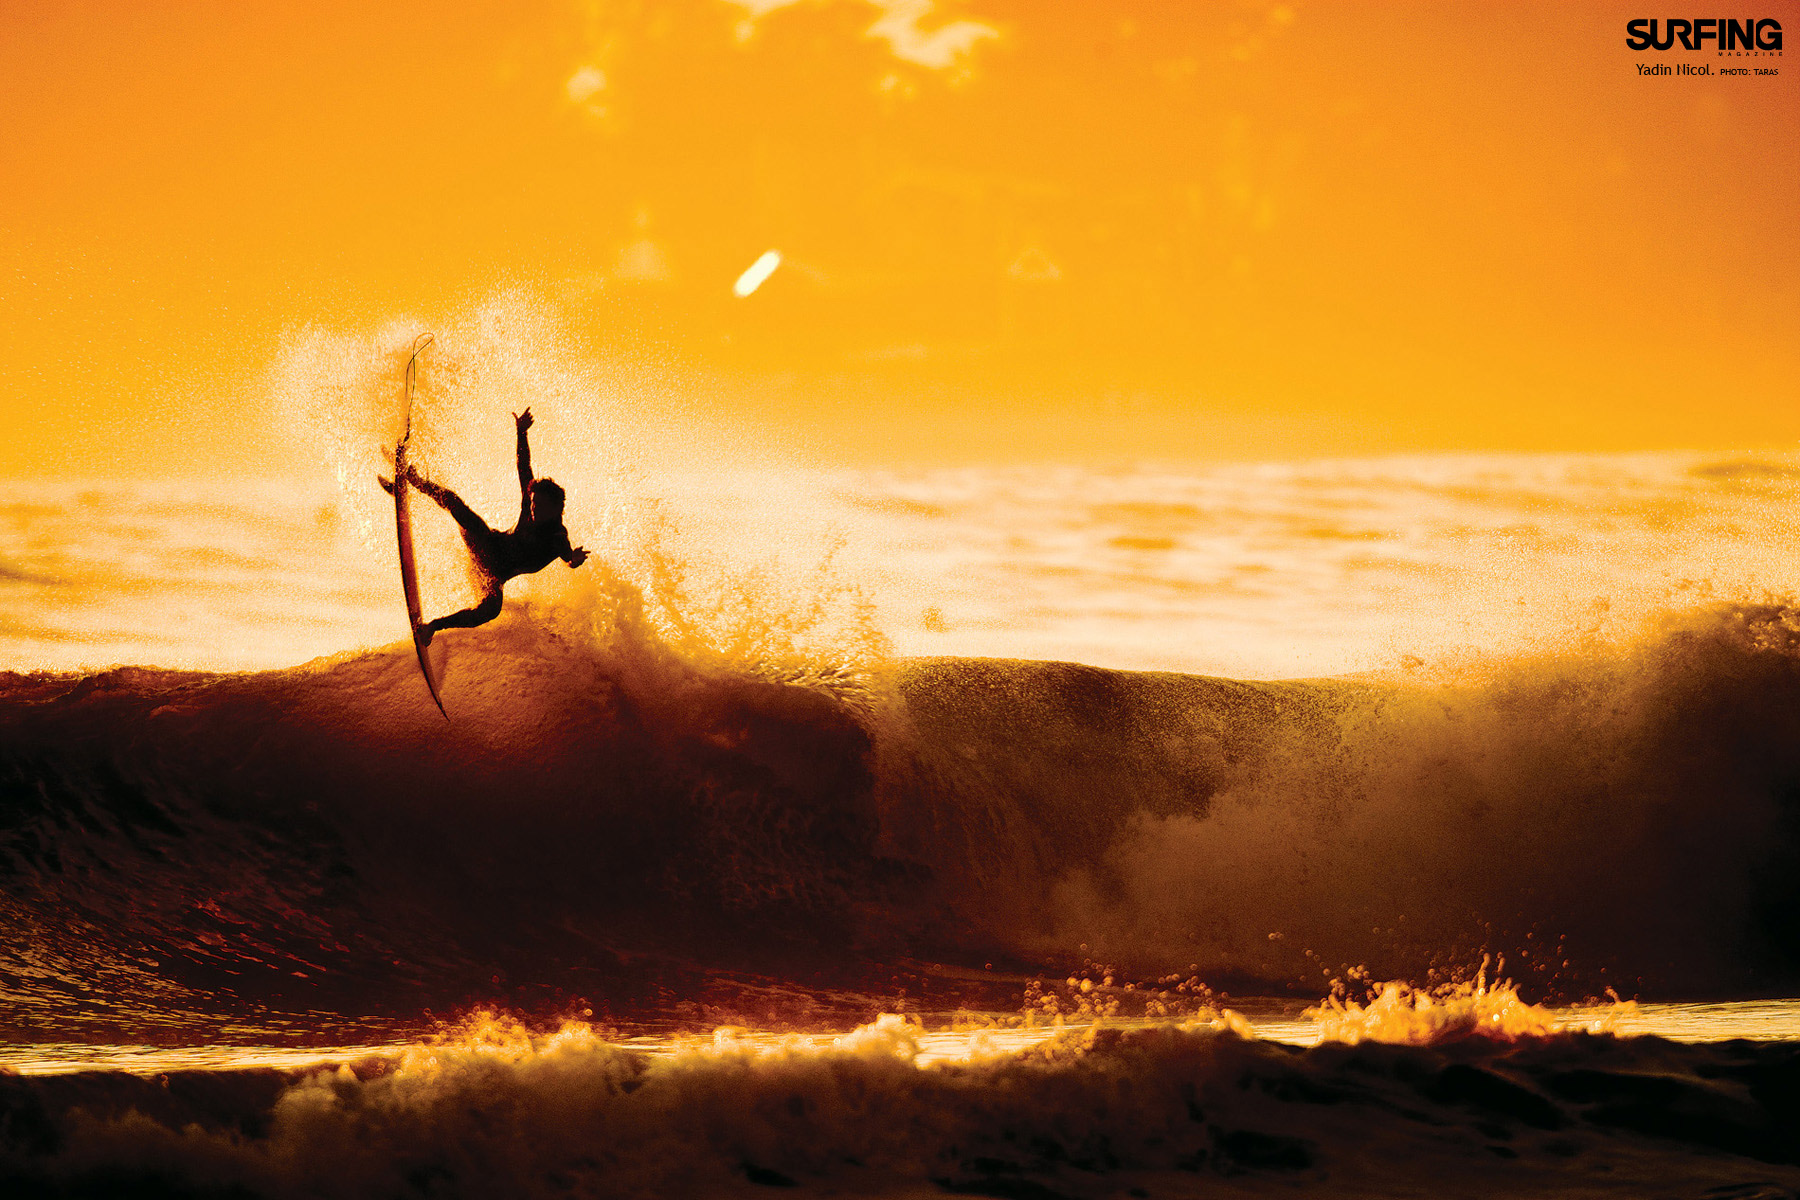 Surfing Wallpaper   LiLzeu   Tattoo DE 1800x1200